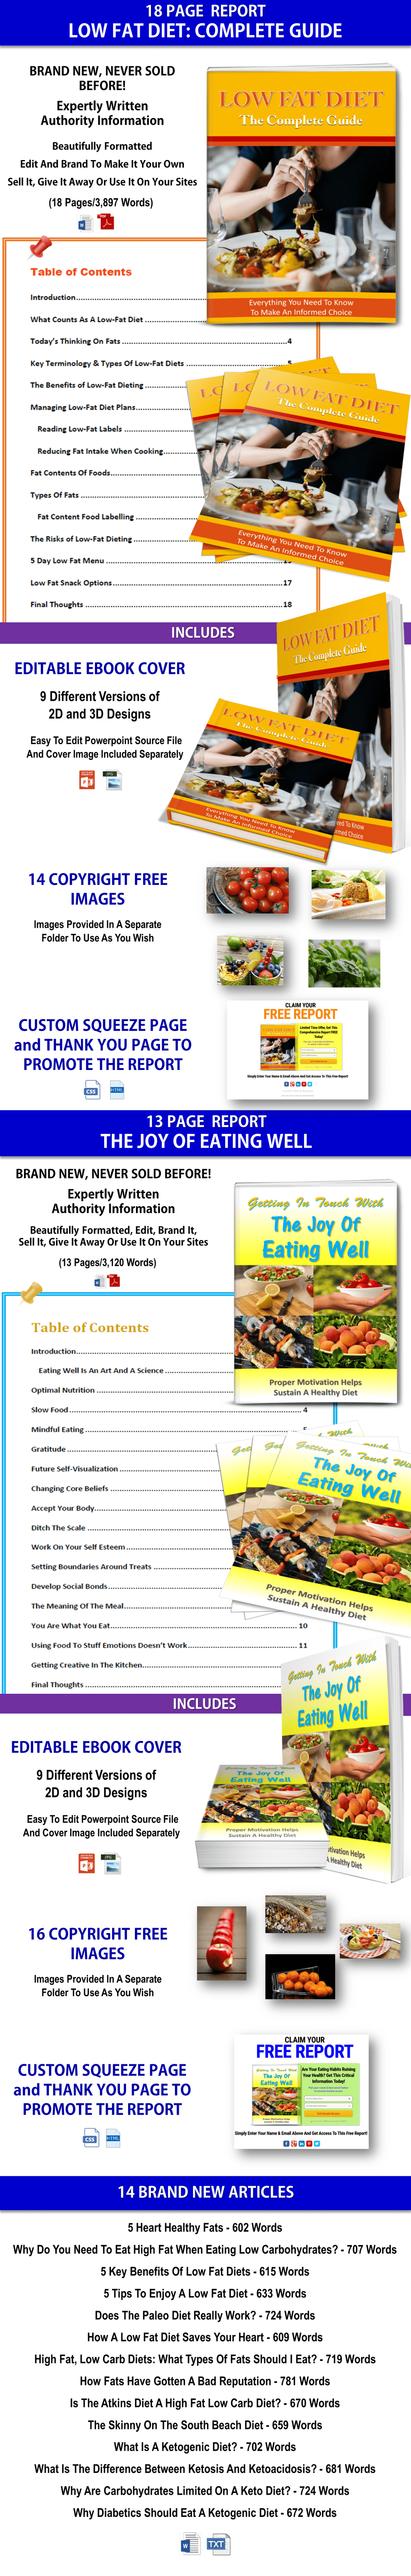 Low Fat Diet, Healthy Eating PLR